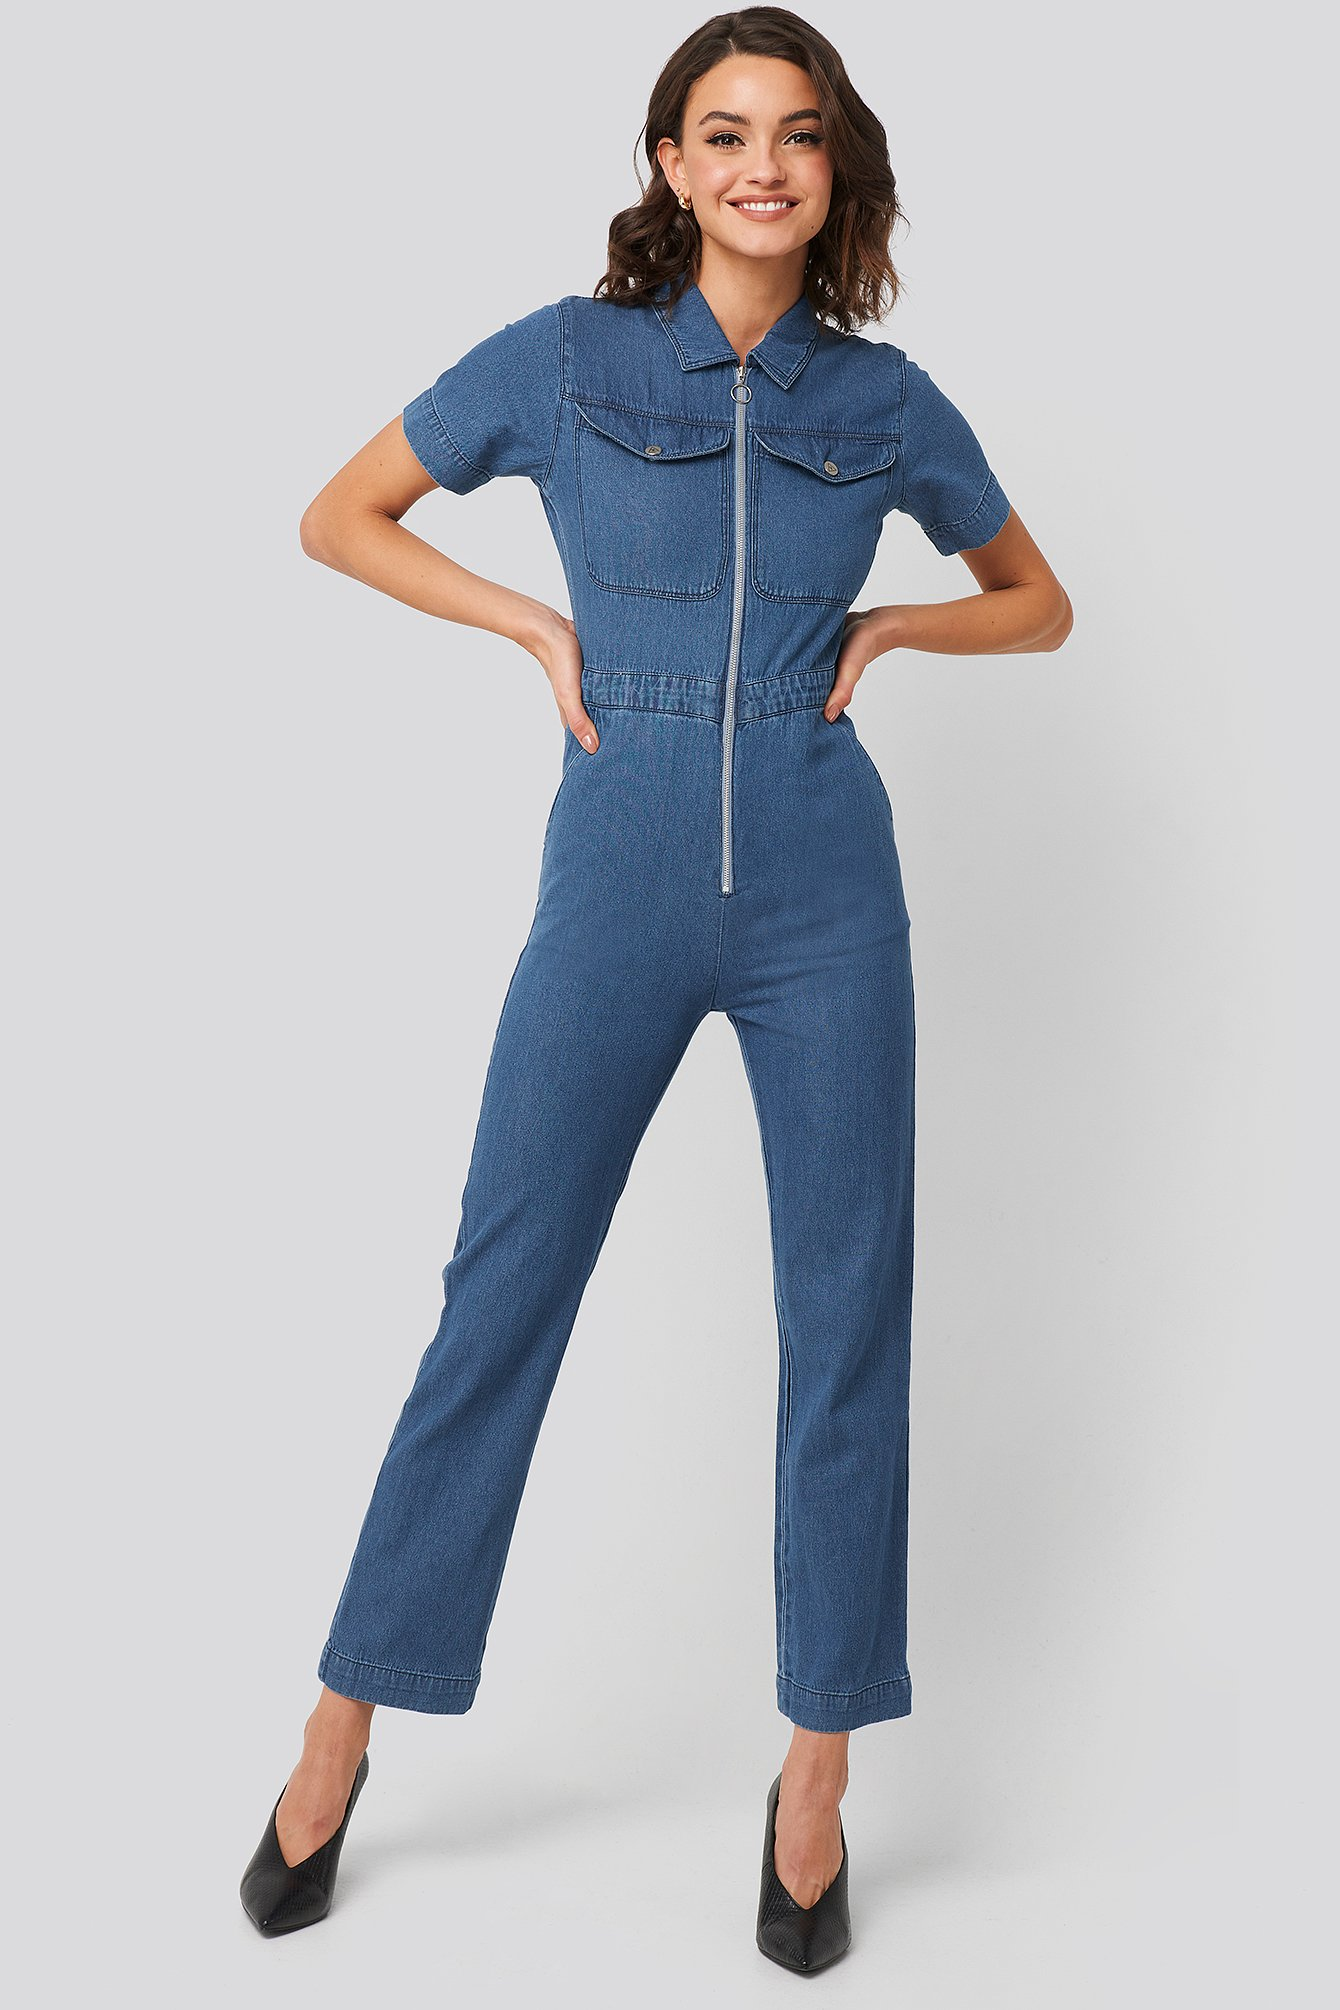 abrand -  A Kim Overall Top - Blue